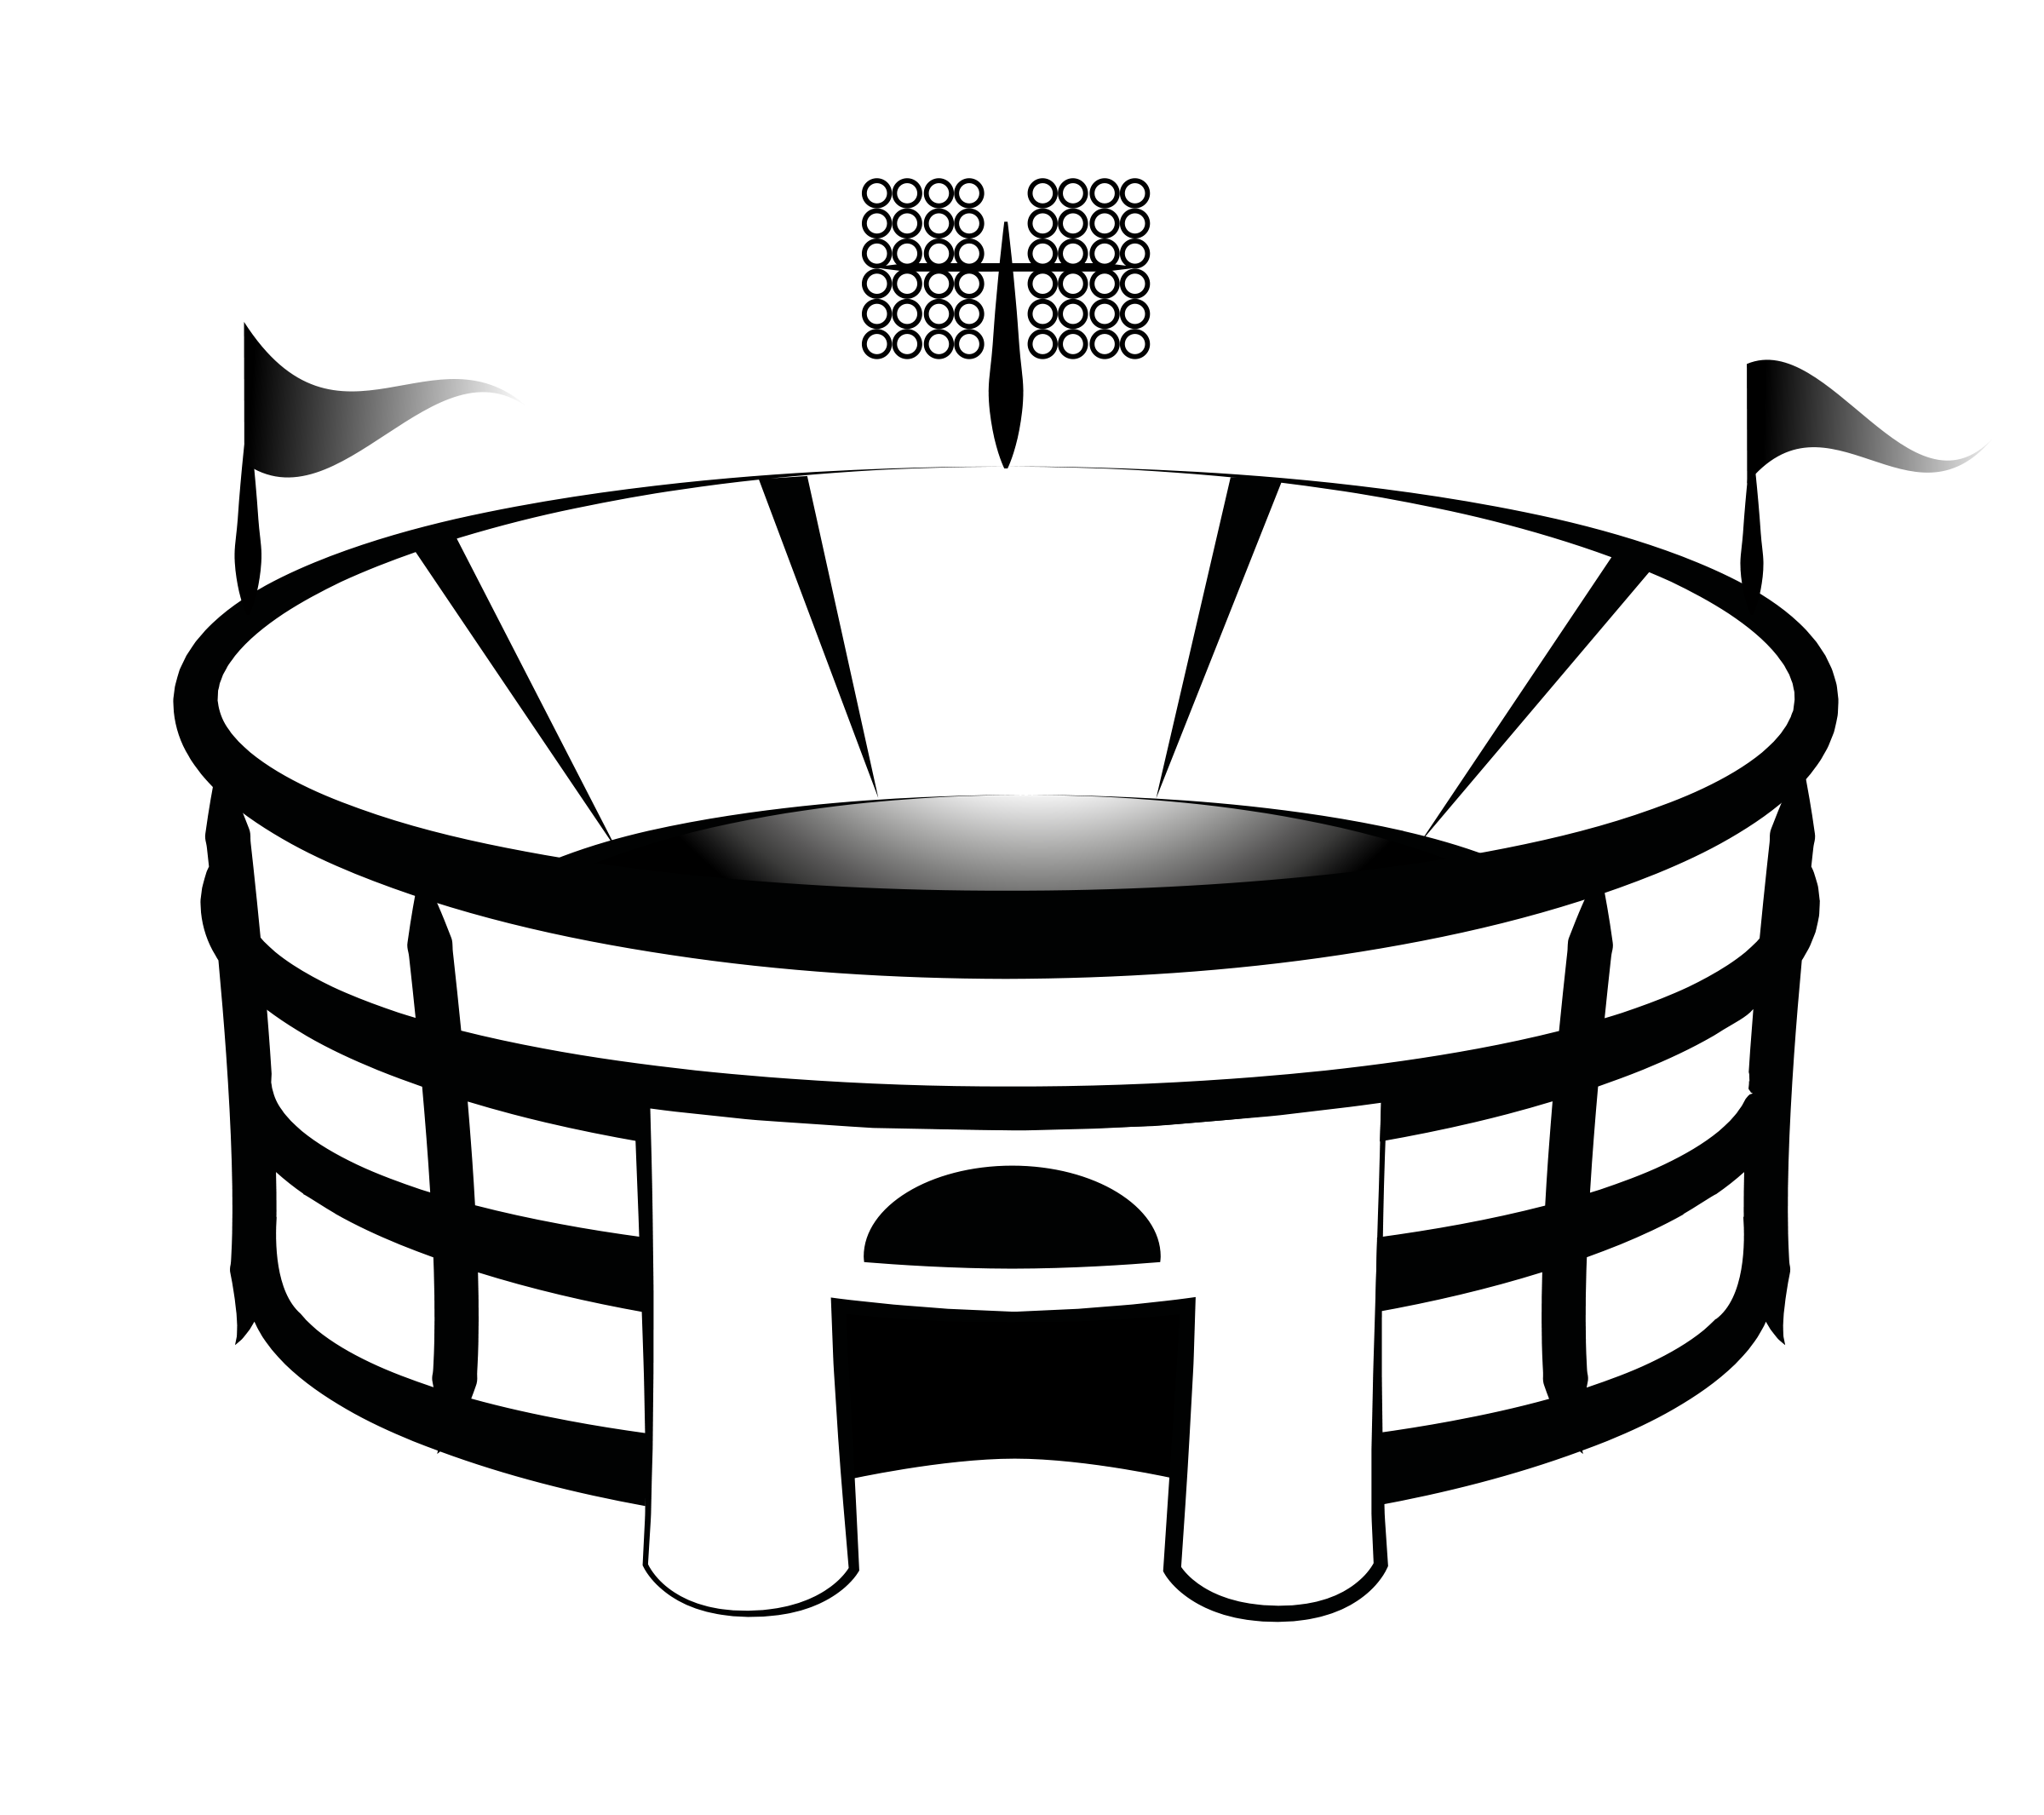 Black And White Drawing Of The Football Stadium Clipart Free Image